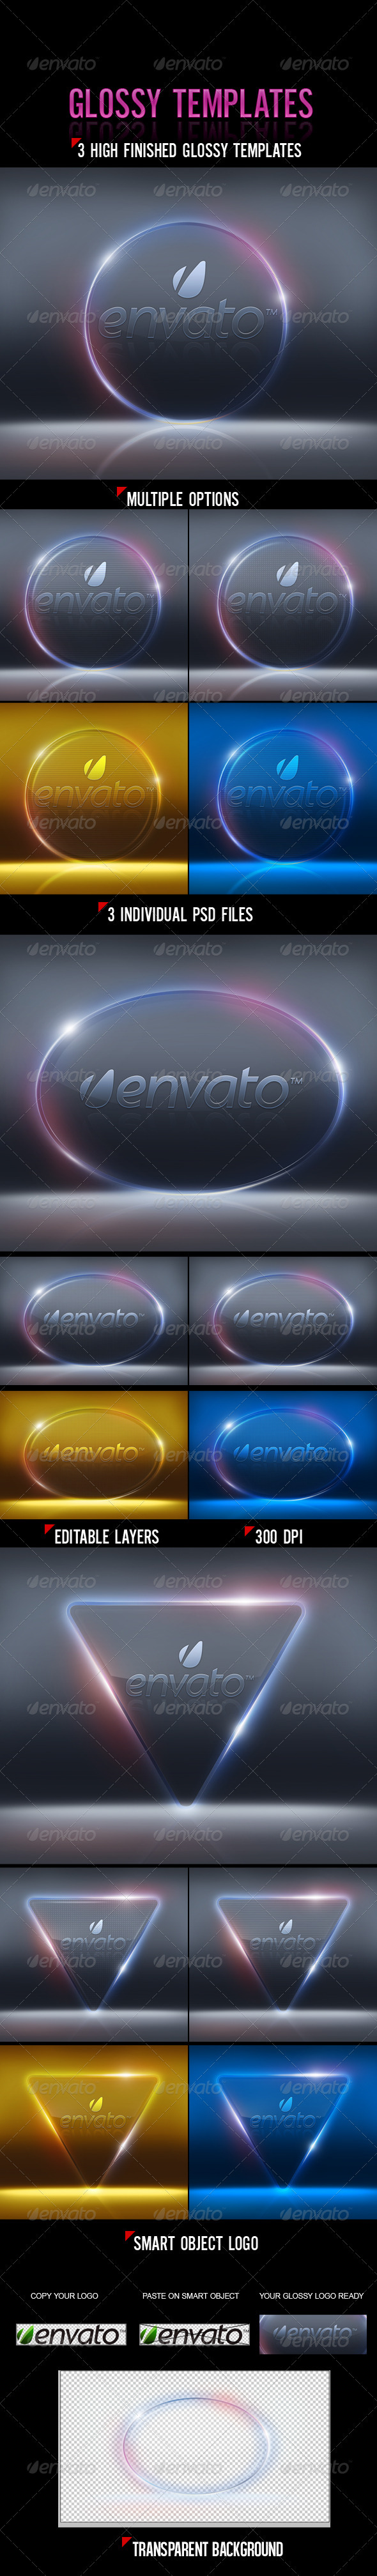 Glossy Templates - Tech / Futuristic Backgrounds